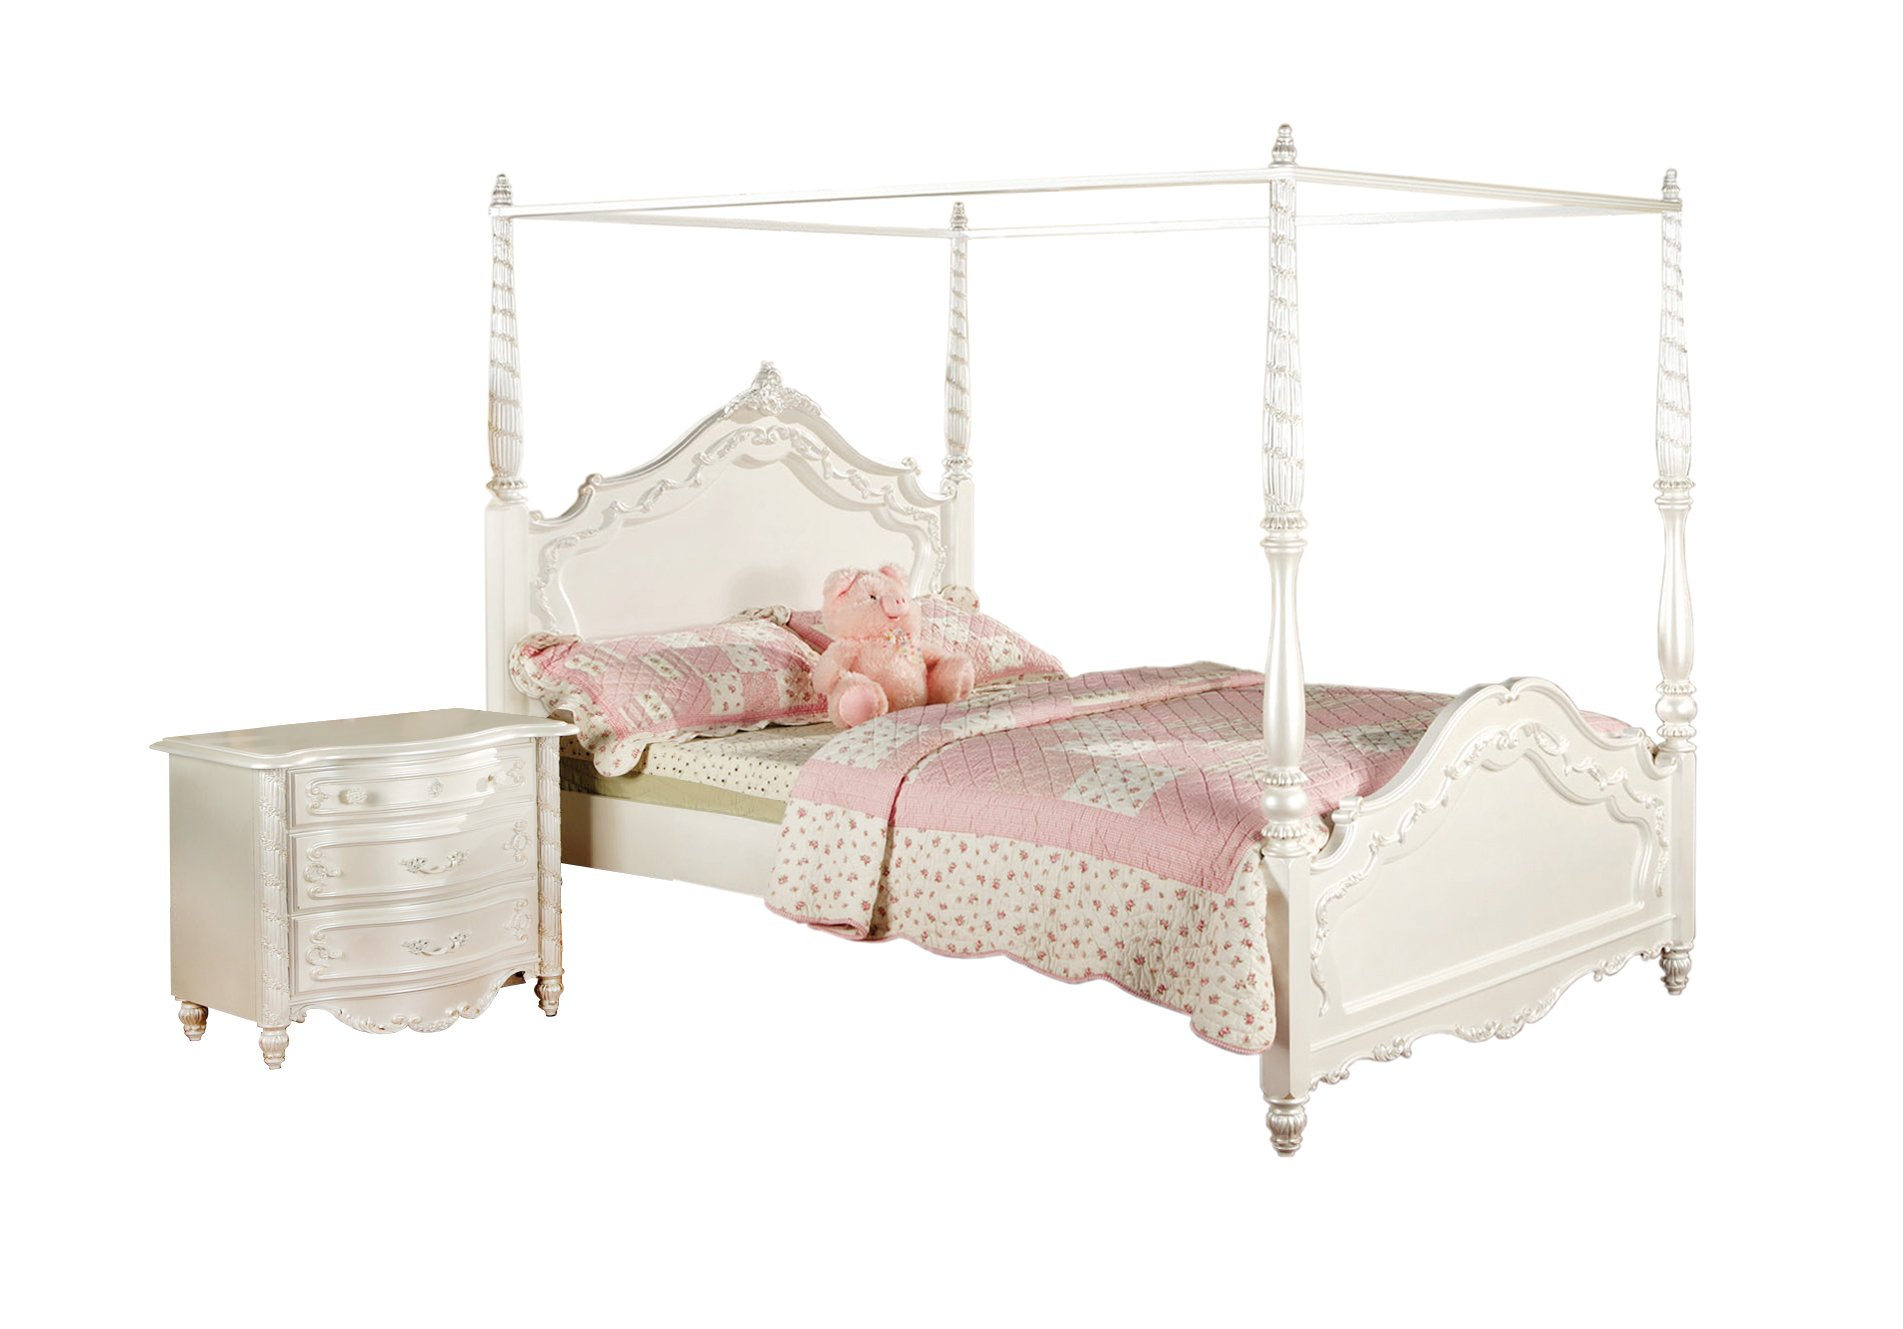 Furniture of America Nathalia Fairy Tale Style 2-Piece Canopy Bed Set, Full, Pearl White Finish